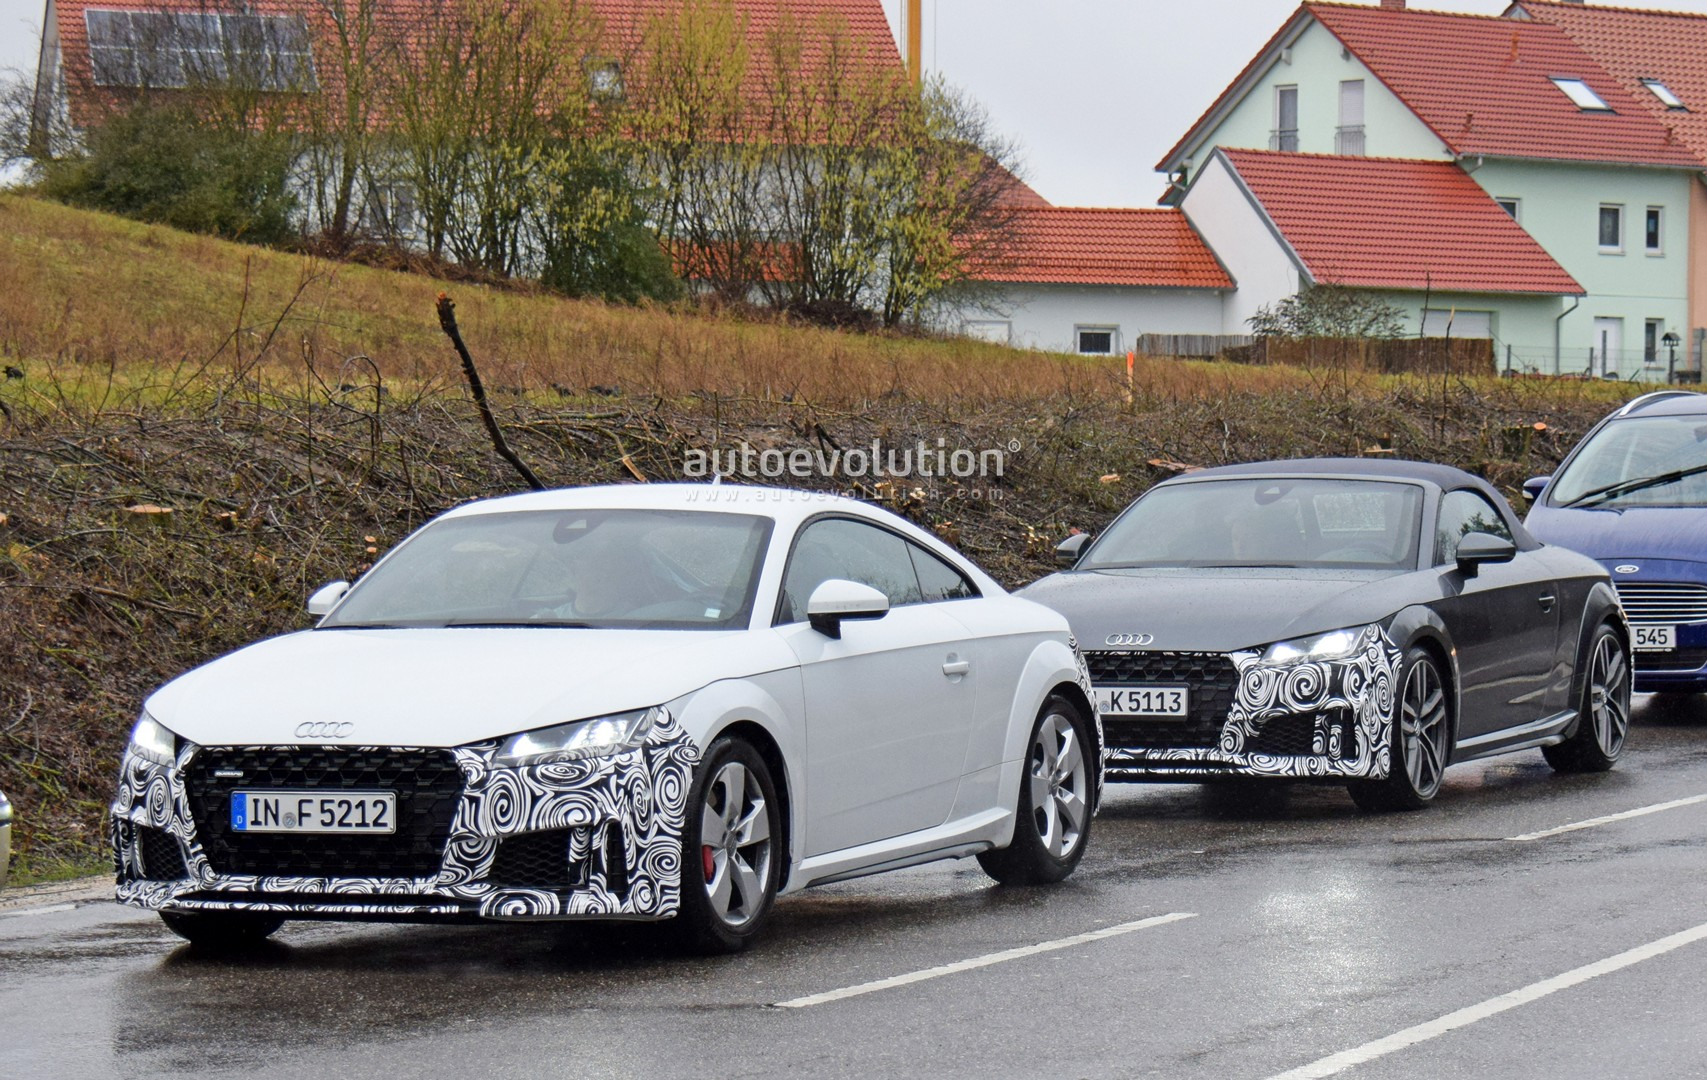 2019 audi tt and tts facelift spied possibly testing new engines autoevolution. Black Bedroom Furniture Sets. Home Design Ideas